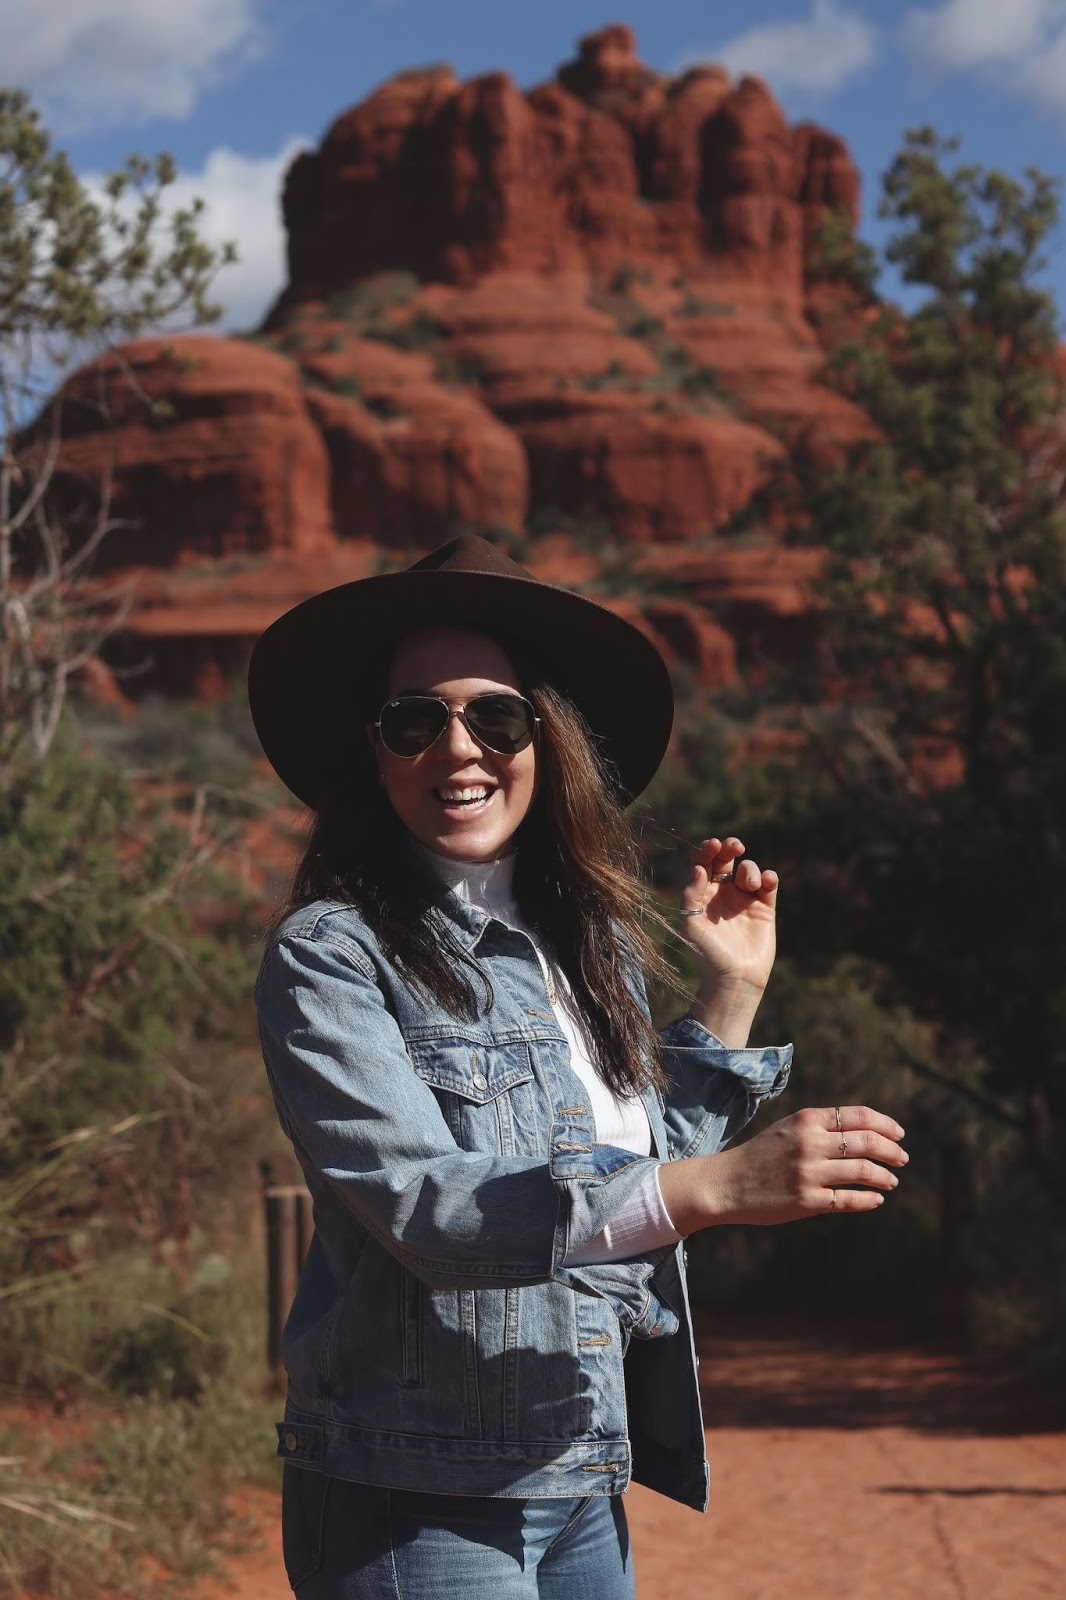 denim on denim outfit brunette the label jacket lack of color rancher hat mother jeans Sedona Arizona travel diary bell rock